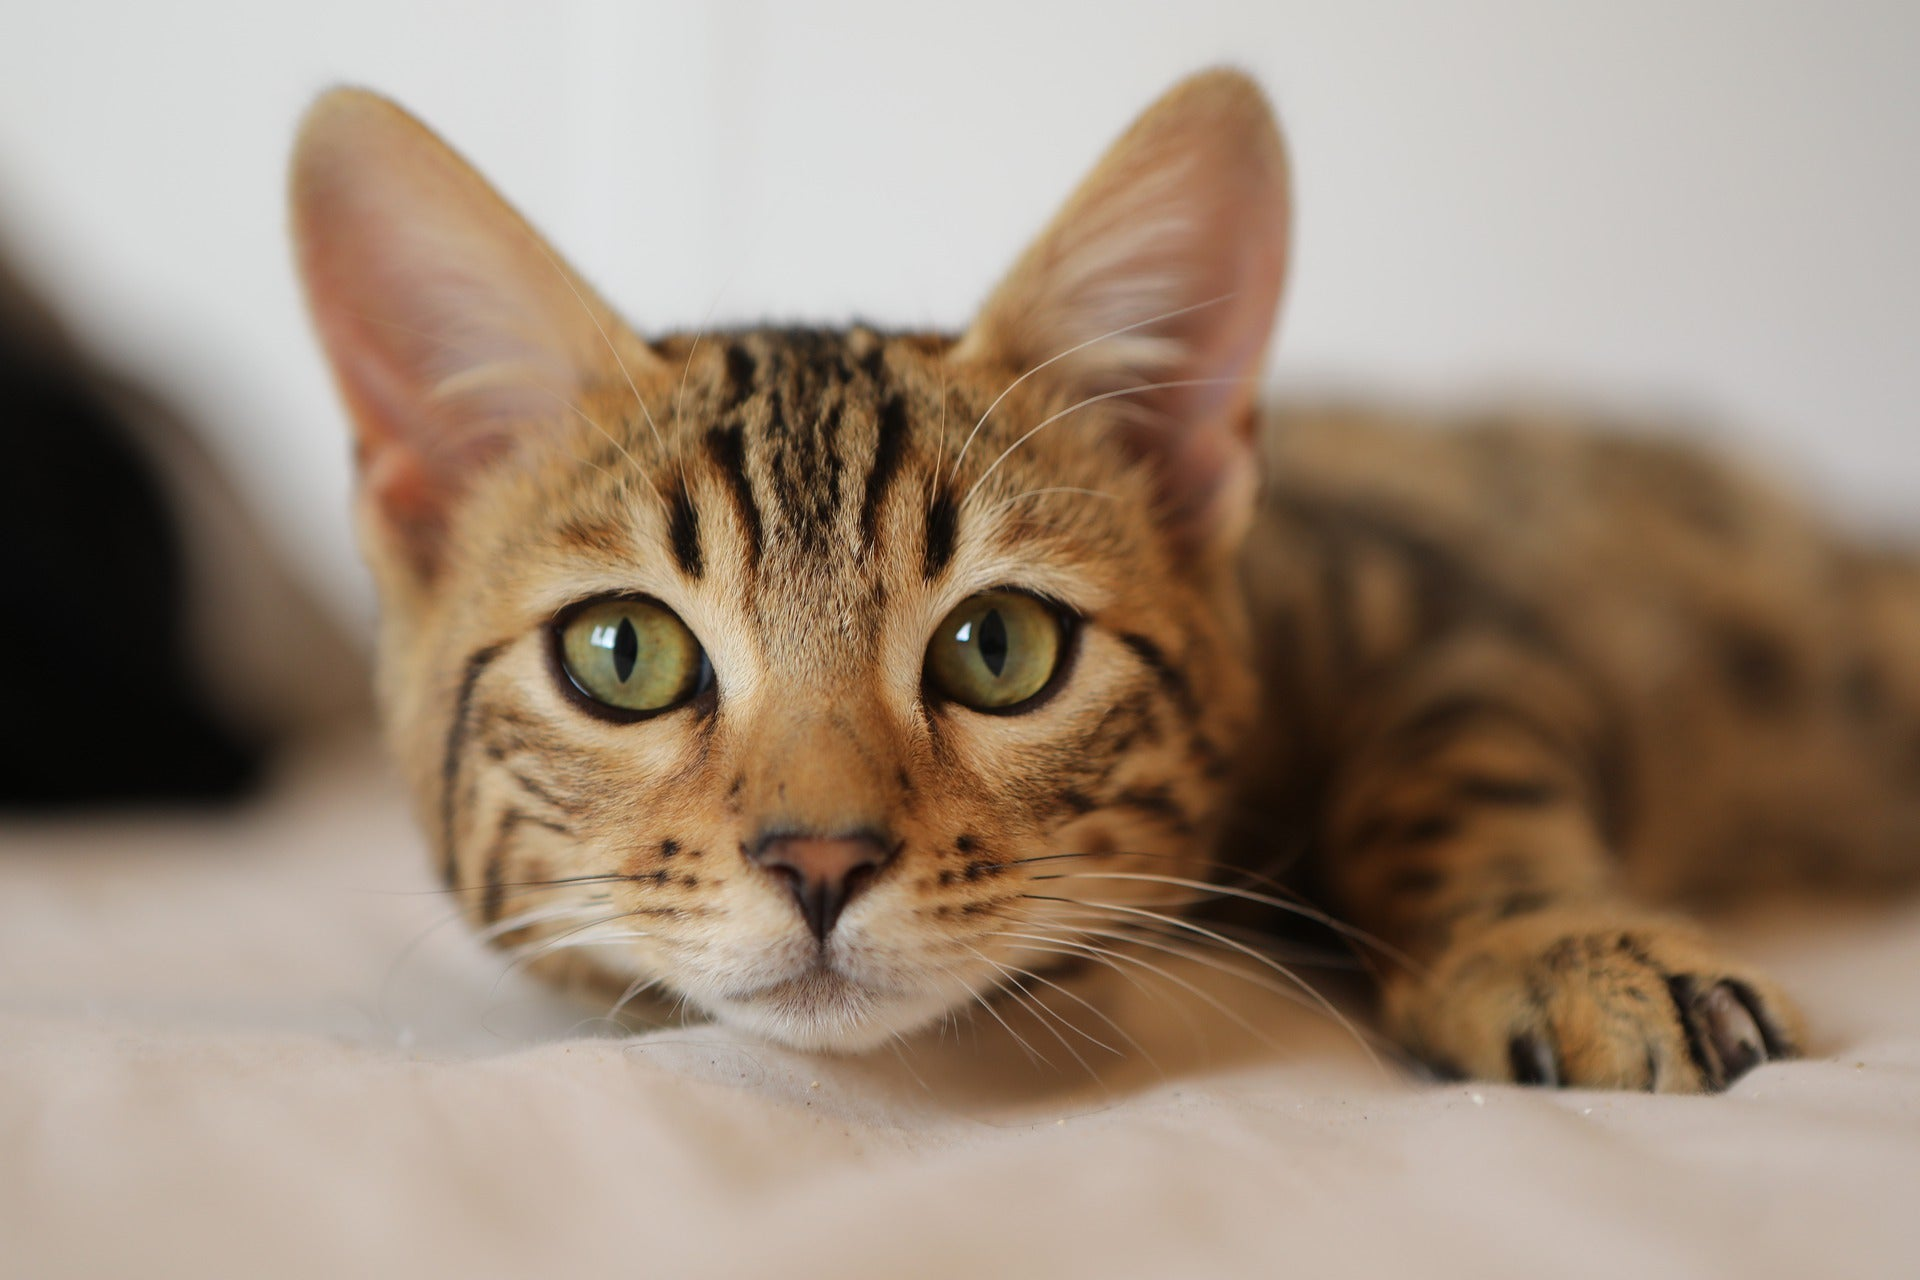 Parasites in cats